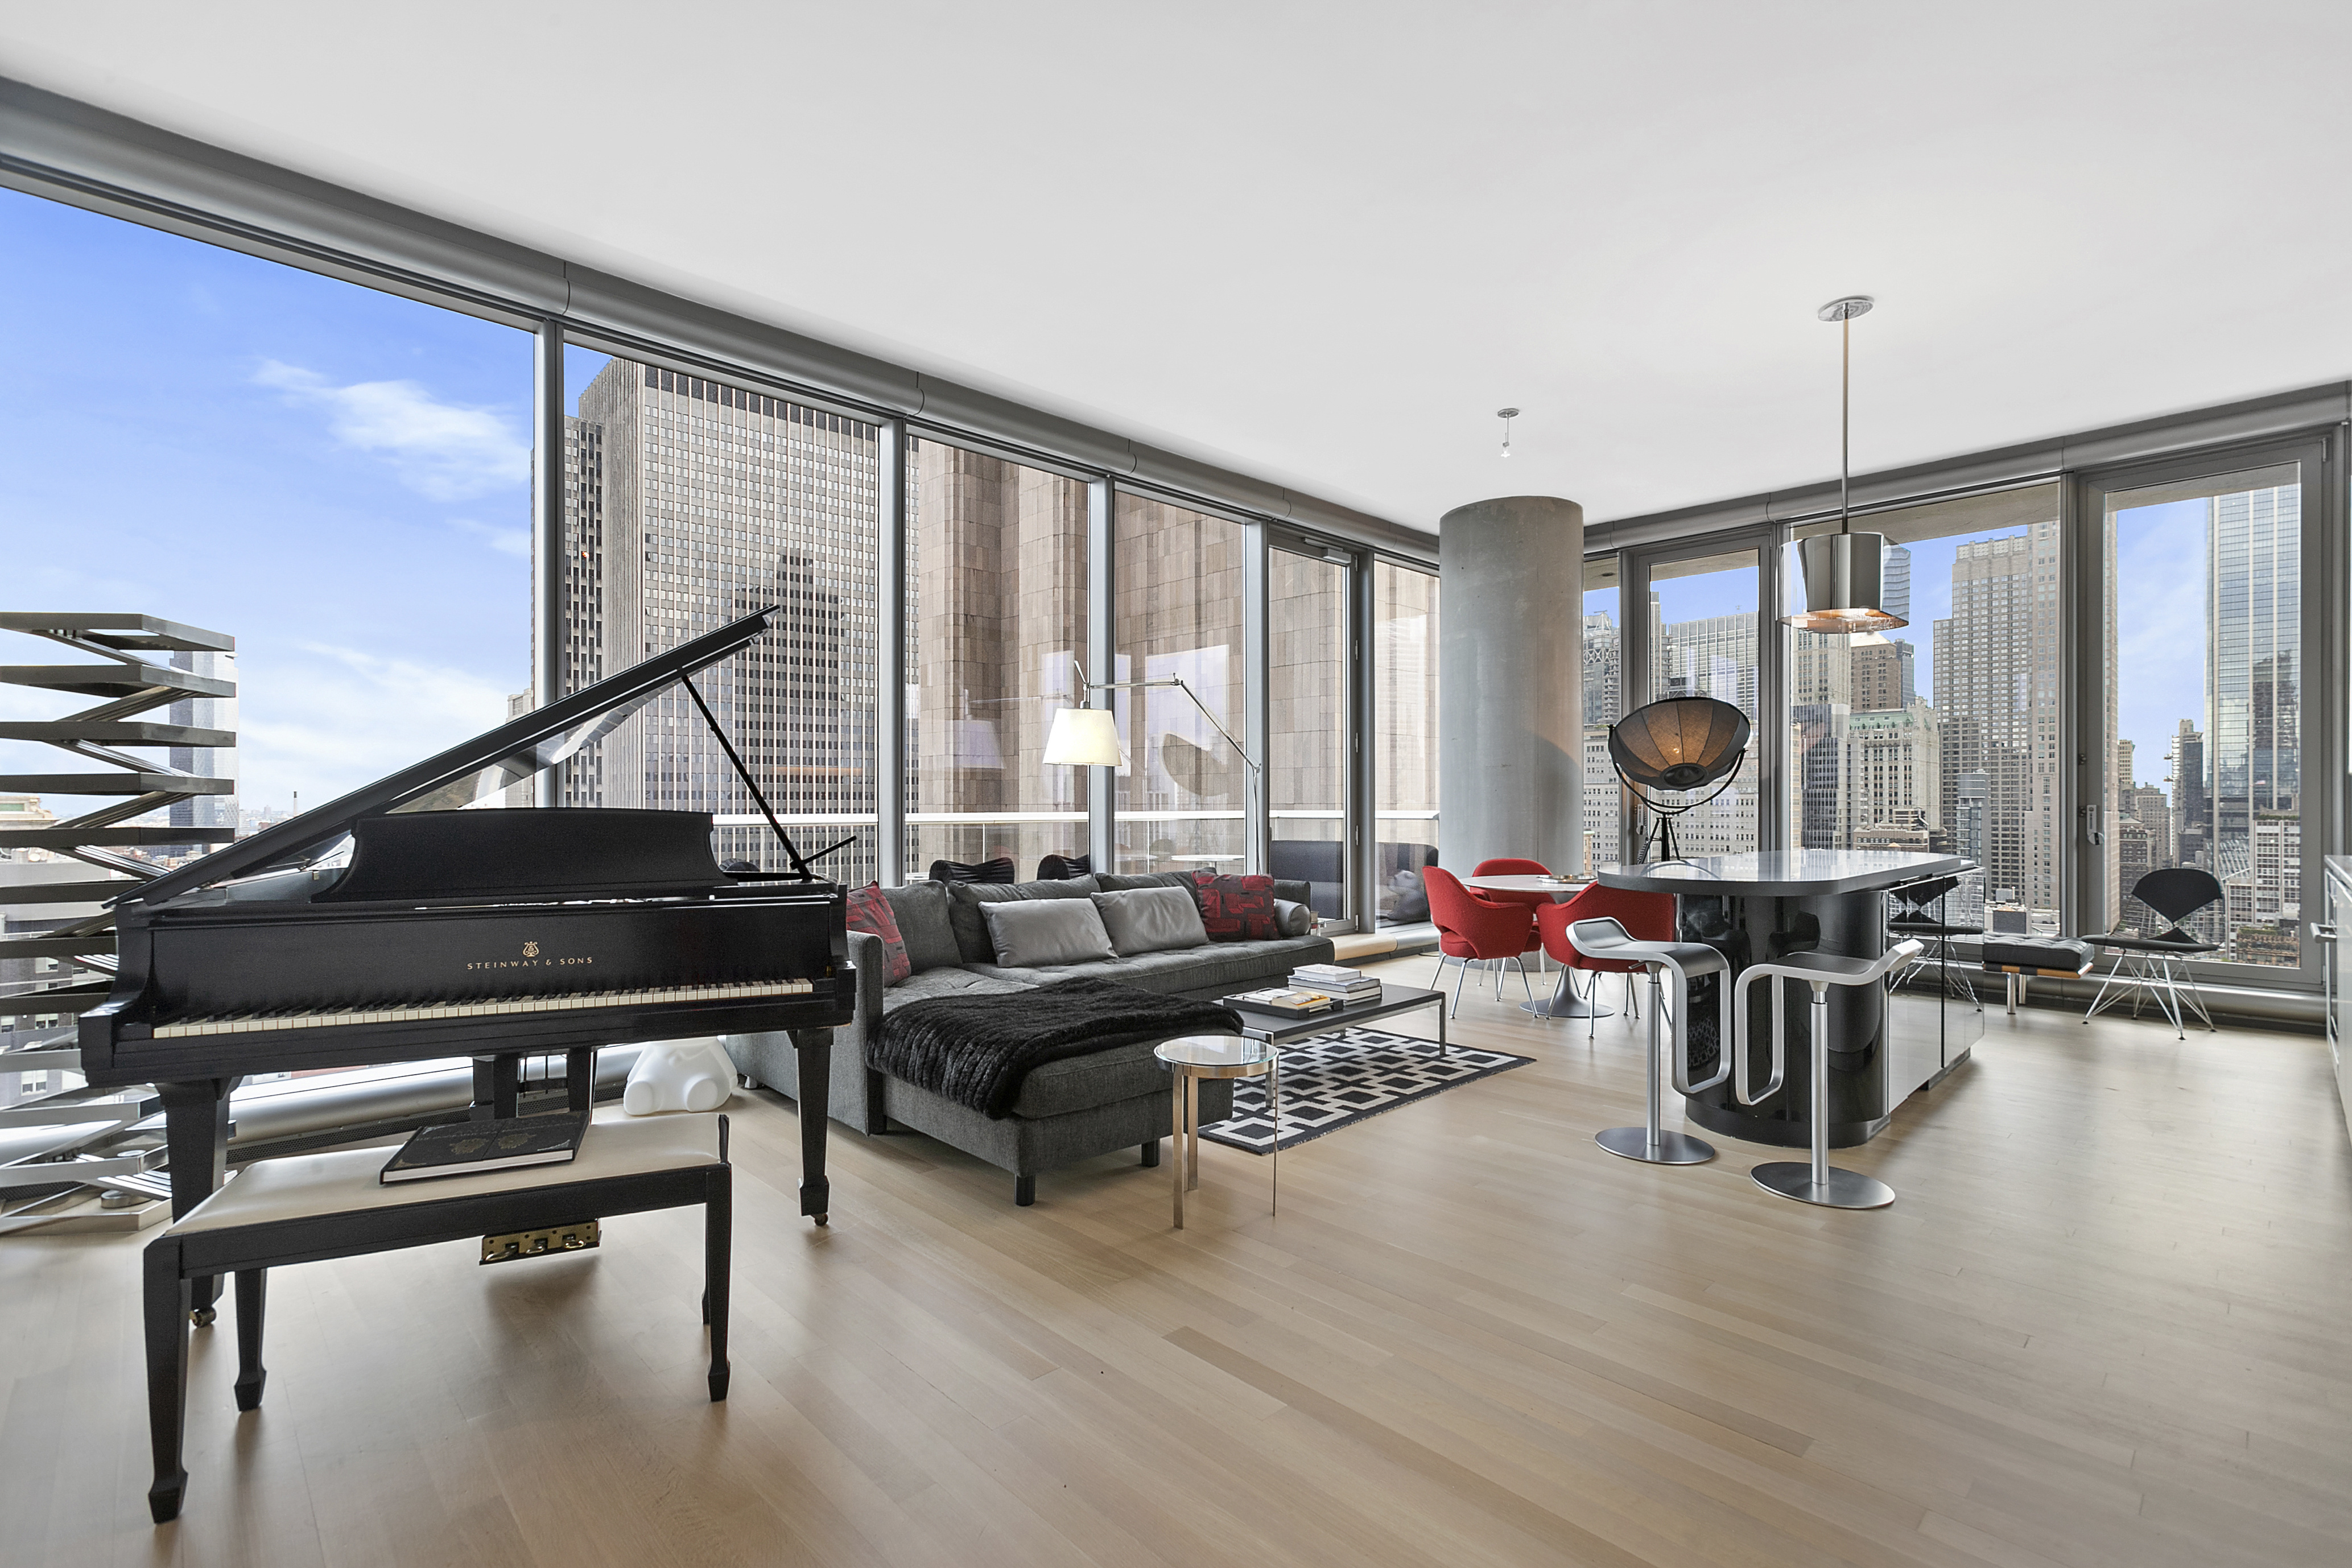 Residence 24B East is the best of comps available with the largest of terraces ( 7' X 24') off great room…plus a second terrace (6' X 14') off the master bedroom. The floor plan indicates a total 1,992 SF (1668 SF Interior / 254 SF Terraces). Gorgeous protected views of stunning Manhattan cityscapes and landmarks including the Chrysler and Citibank Buildings to the North; Manhattan and Williamsburg Bridges to the East; Woolworth Building, World Trade Center and Hudson River to the South and West. Grand entrance foyer and gallery leads to the spacious great room that includes access to an expansive terrace for the enjoyment of sensational sunrises and moonlight. Motorized Electric shades are throughout the apartment (blackout shades in bedrooms)Custom interiors include 11' ceilings with floor to ceiling windows, a sculptural granite kitchen island, Sub-zero and Miele appliances, wine cooler. Five-fixture master bath of travertine marble with radiant heated floors. Appalachian solid White Oak flooring throughout the residence, 4-pipe heating and cooling system for year-round multi-zone climate control.Luxurious furnishings include collections of art and iconic designs by Eero Saarinen, Dieter Rams, Ligne Roset, Knoll, Vitra…and an ebony Steinway Grand Piano, Model L. There are 2 king bed suites.In an unprecedented collaboration between artist and architect, the landmark tower designed by Herzog & de Meuron is seamlessly incorporated at its base with a specially commissioned Anish Kapoor sculpture. Ranked in 2019 among Top 10 Most Prestigious Condos In New York City.